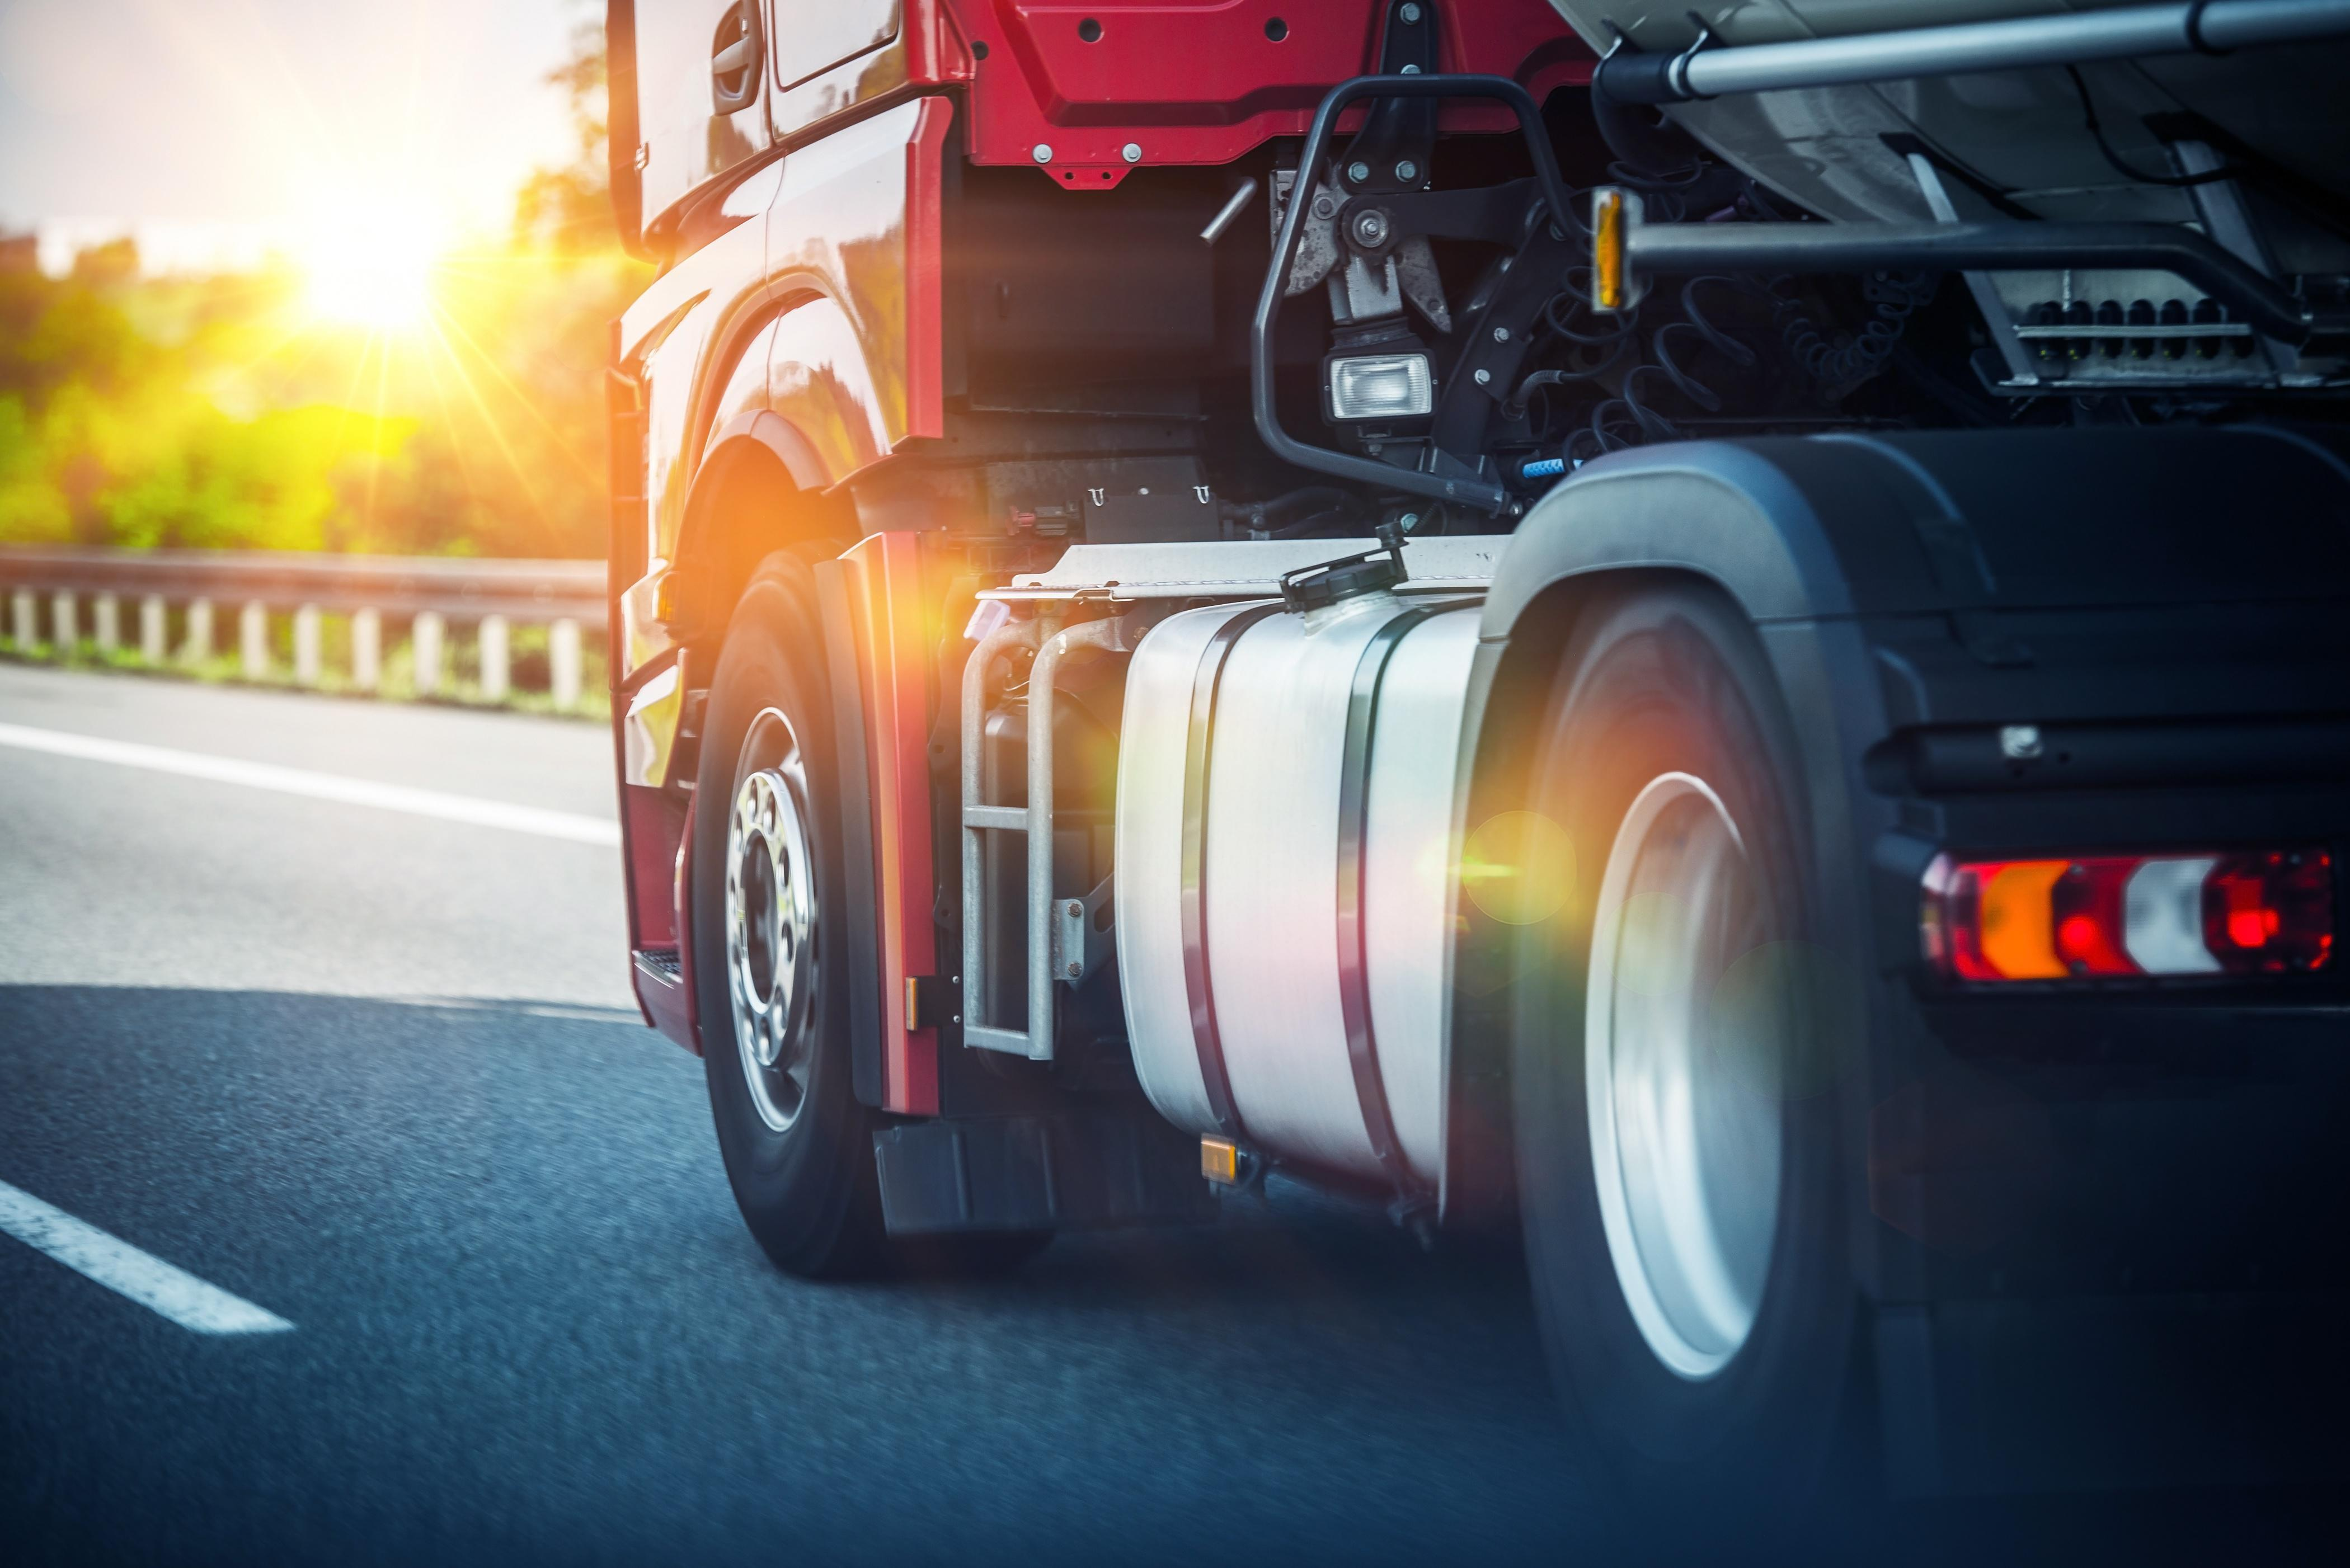 Total lubricants provide optimal engine protection for your commercial vehicles